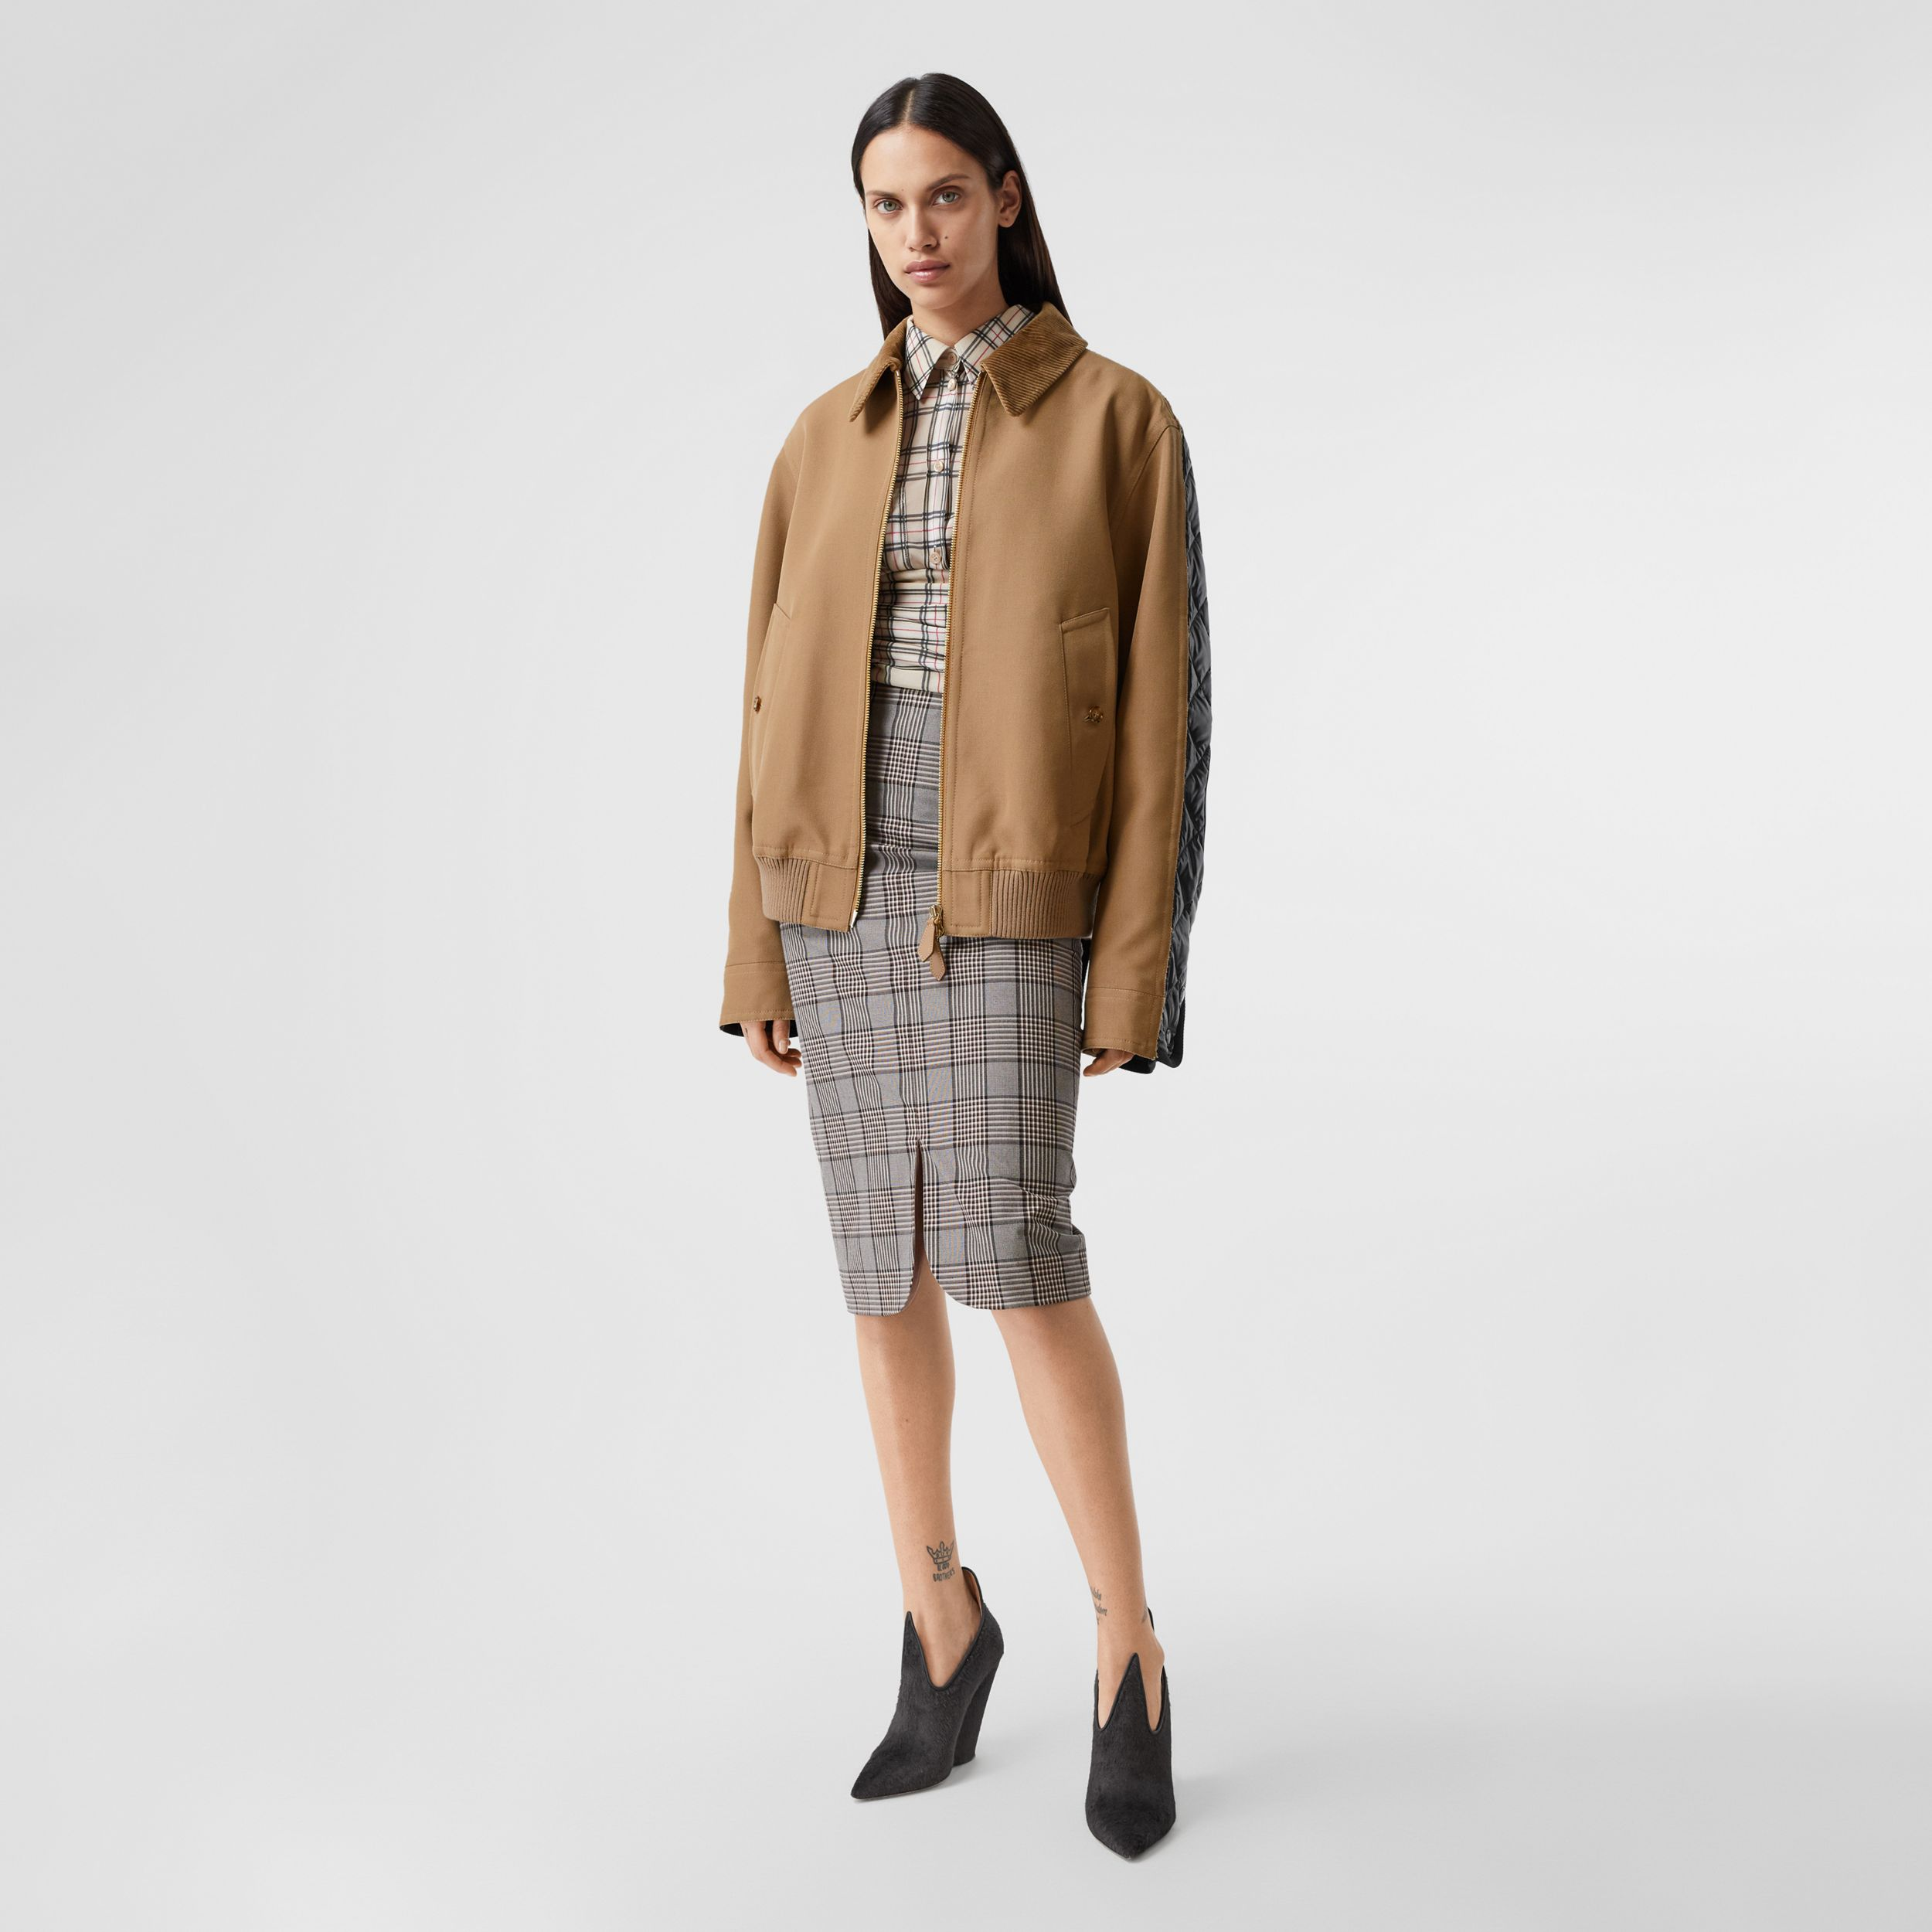 Technical Wool Reconstructed Harrington Jacket in Biscuit - Women | Burberry - 1